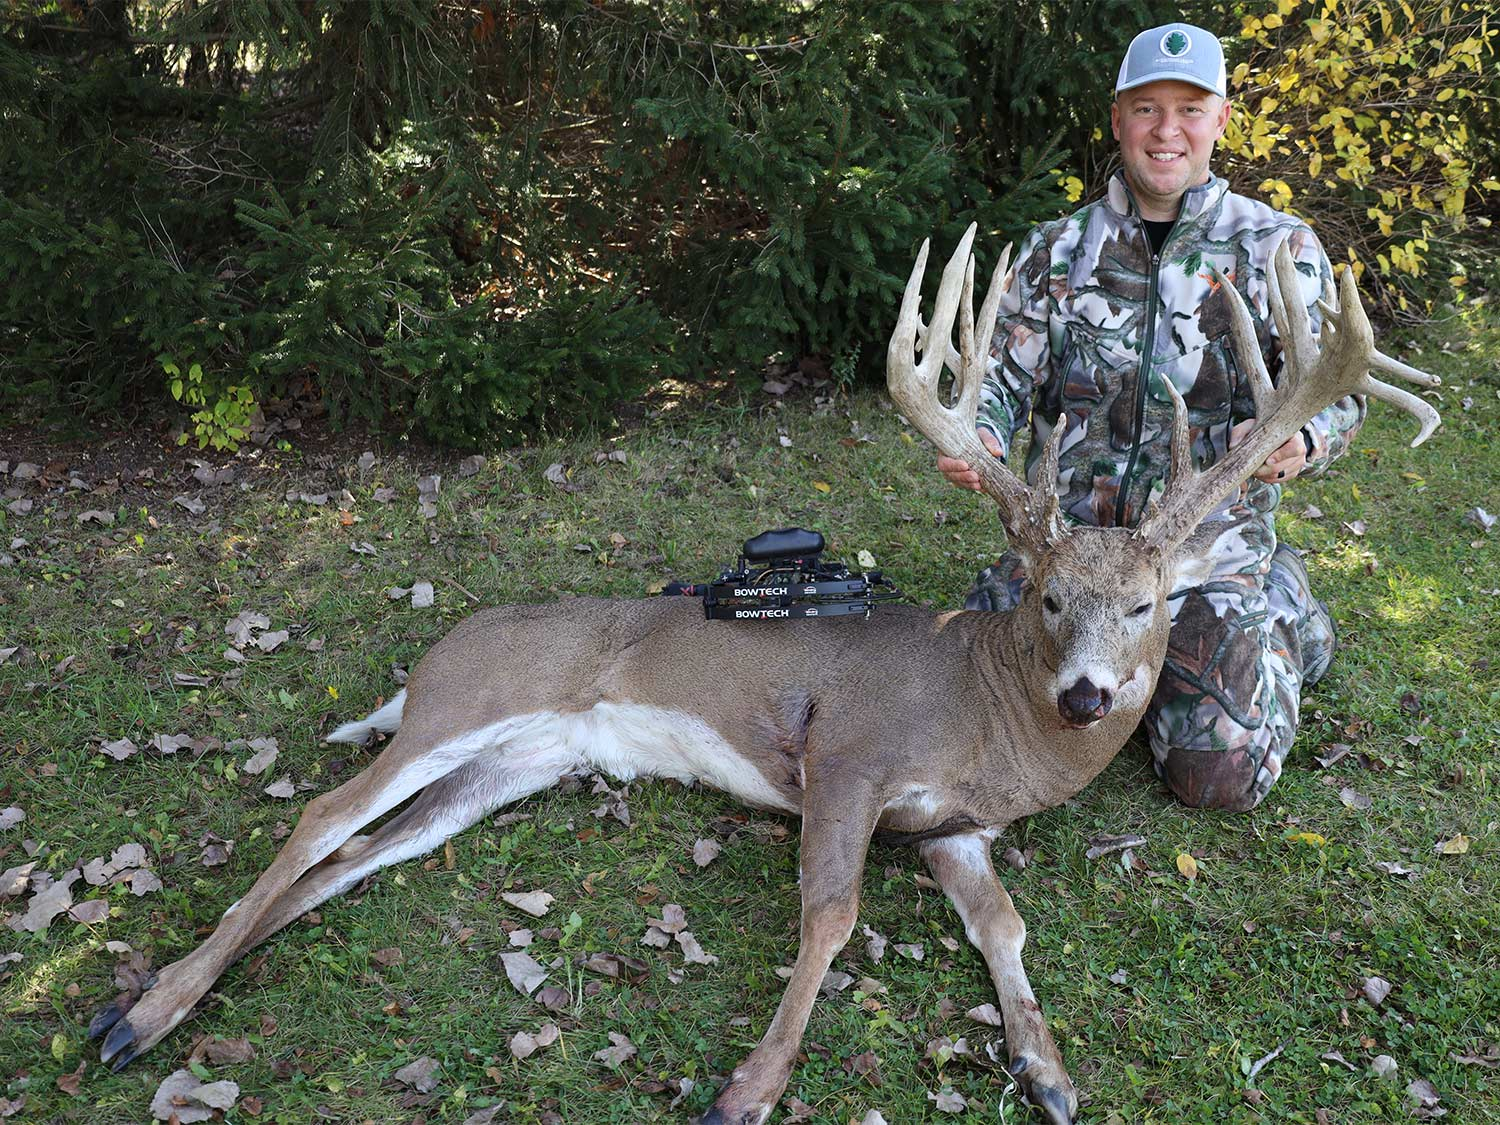 A hunter kneels behind a whitetail buck and hold its head up by the antlers.